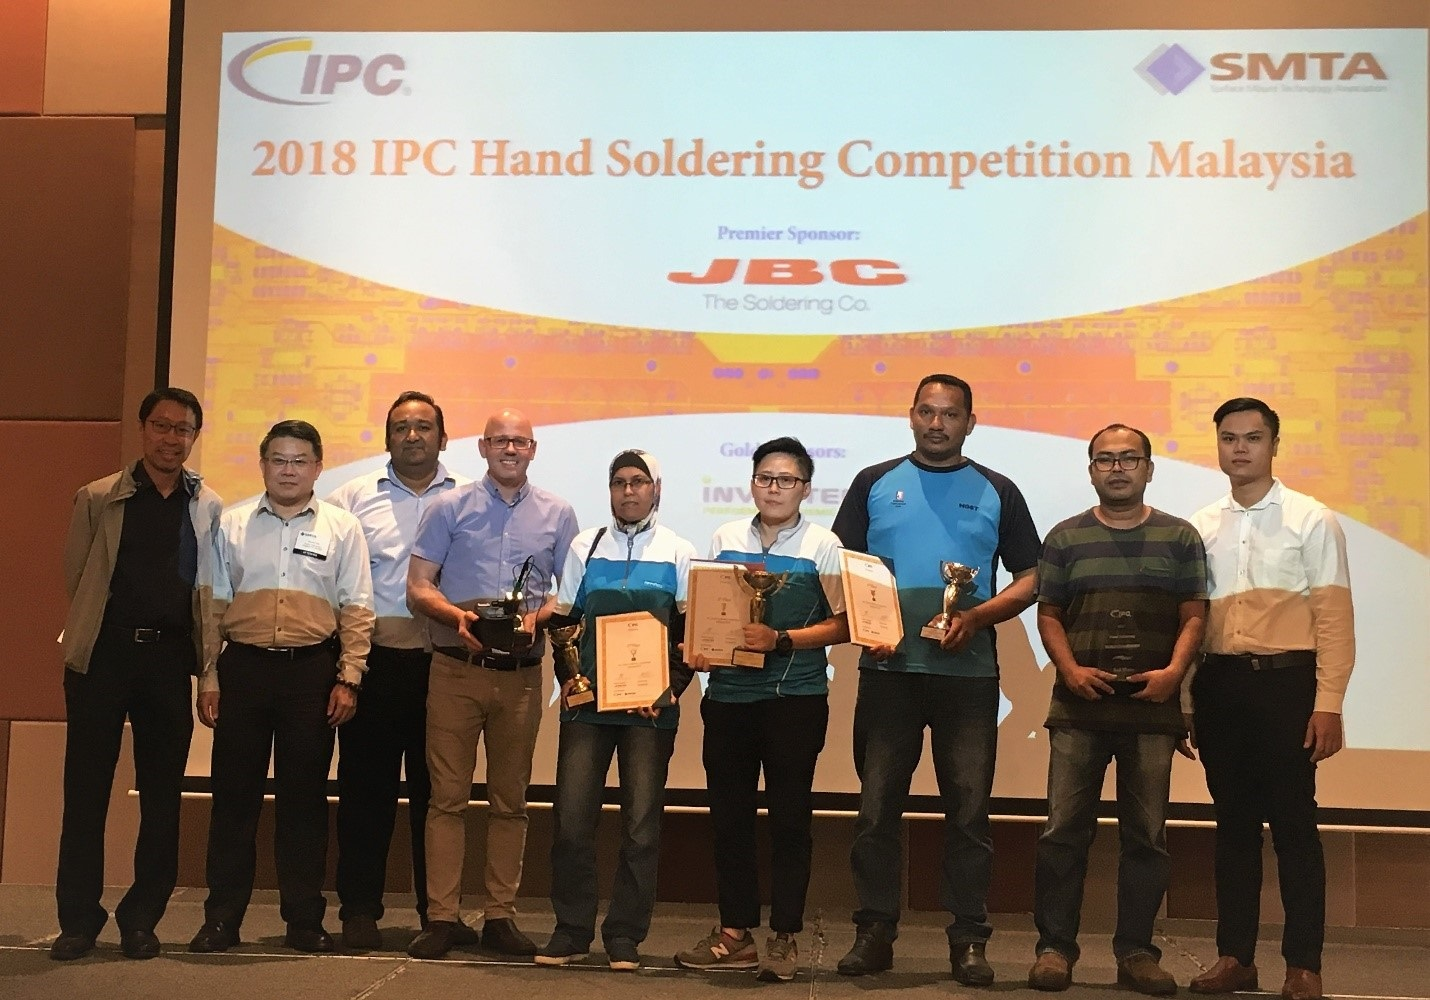 IPC Hand Soldering Competition Winner Crowned at SMTA Tabletop Exhibition 2018 in Penang, Malaysia